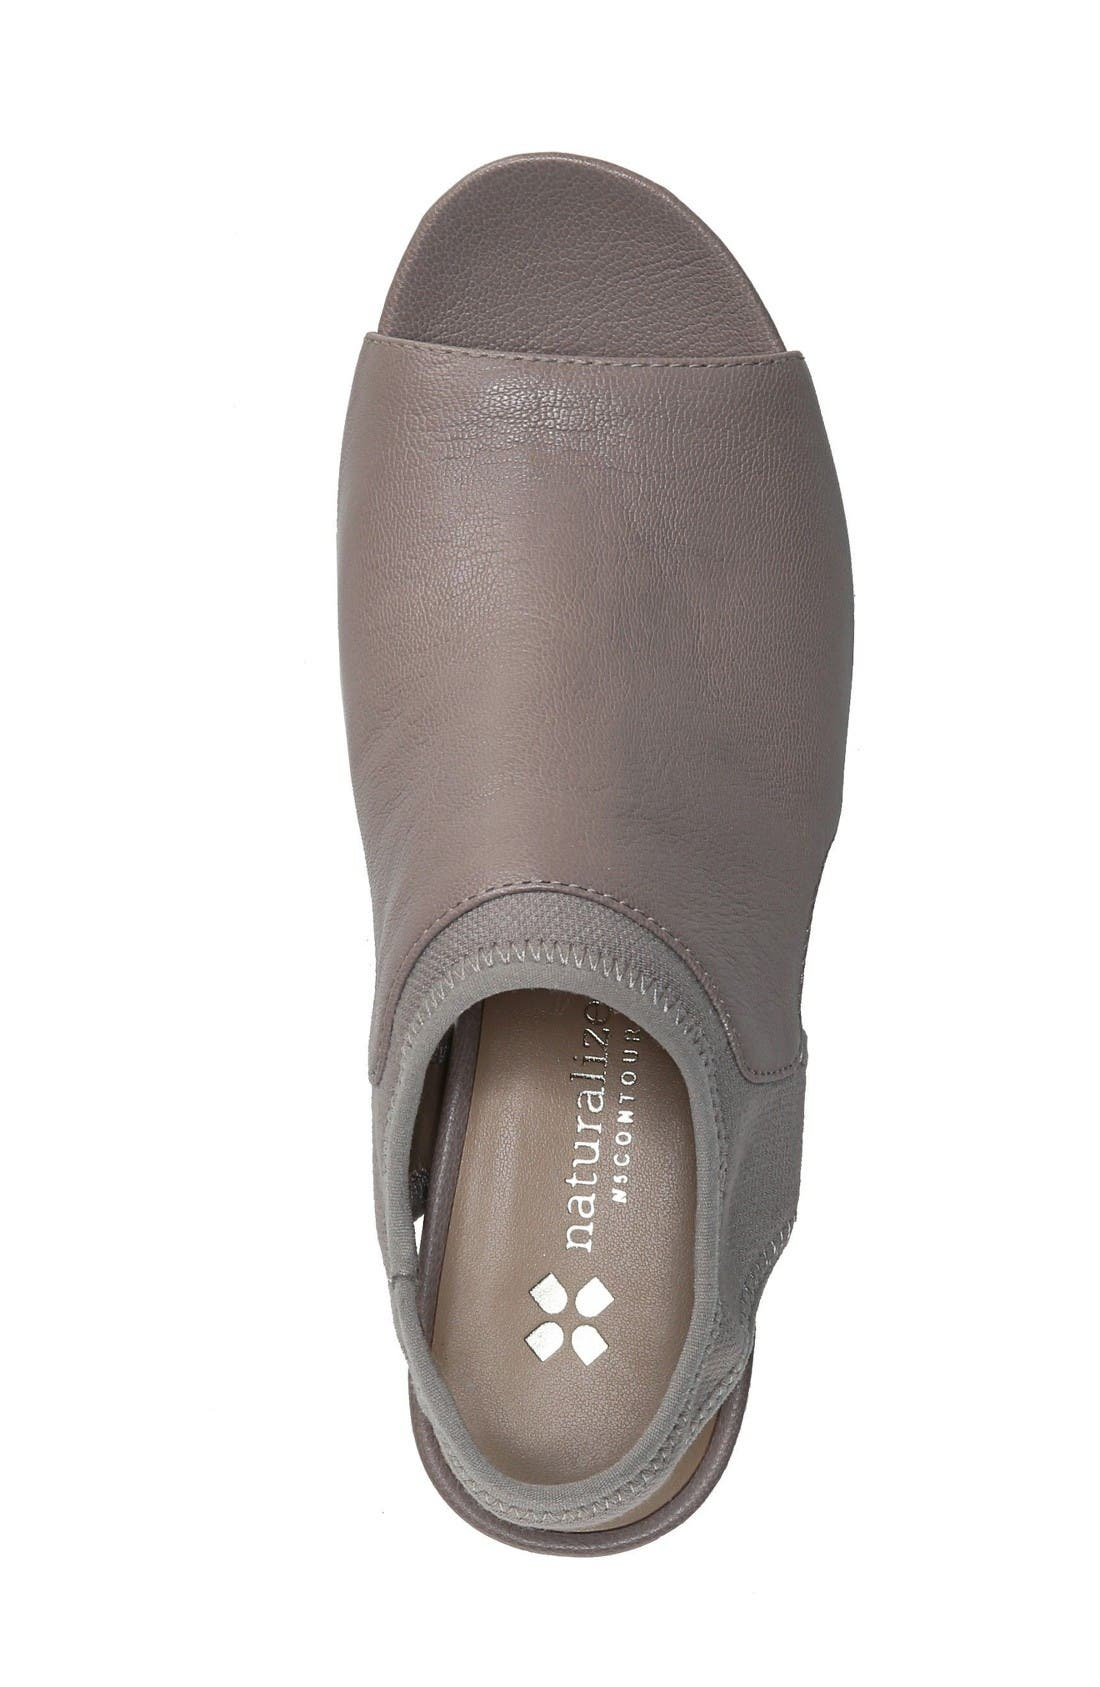 Cailla Shield Sandal,                             Alternate thumbnail 3, color,                             Grey Leather